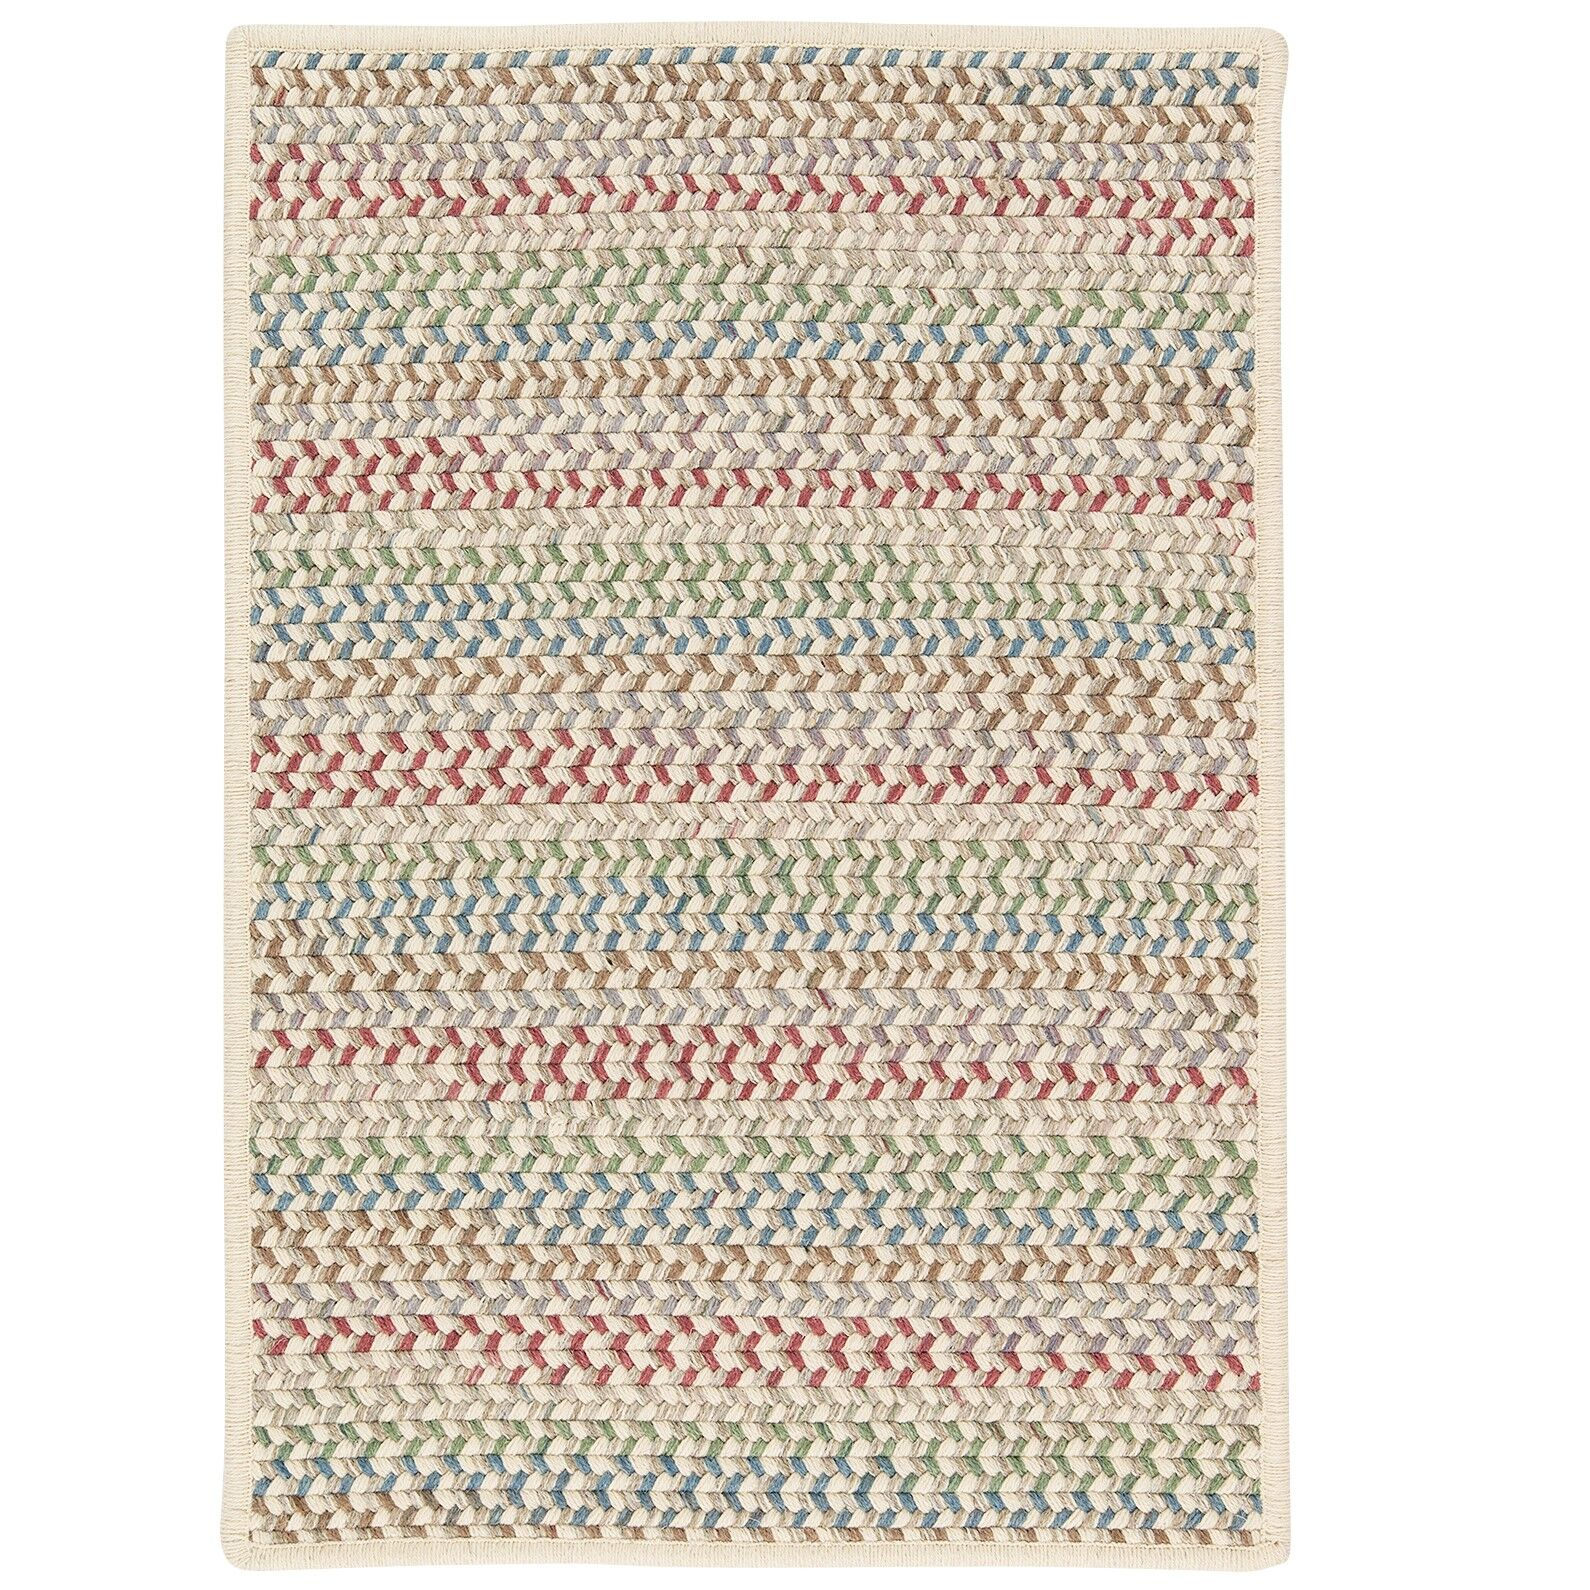 Arvie Hand-Woven Red/Green Area Rug Rug Size: Runner 2' x 6'